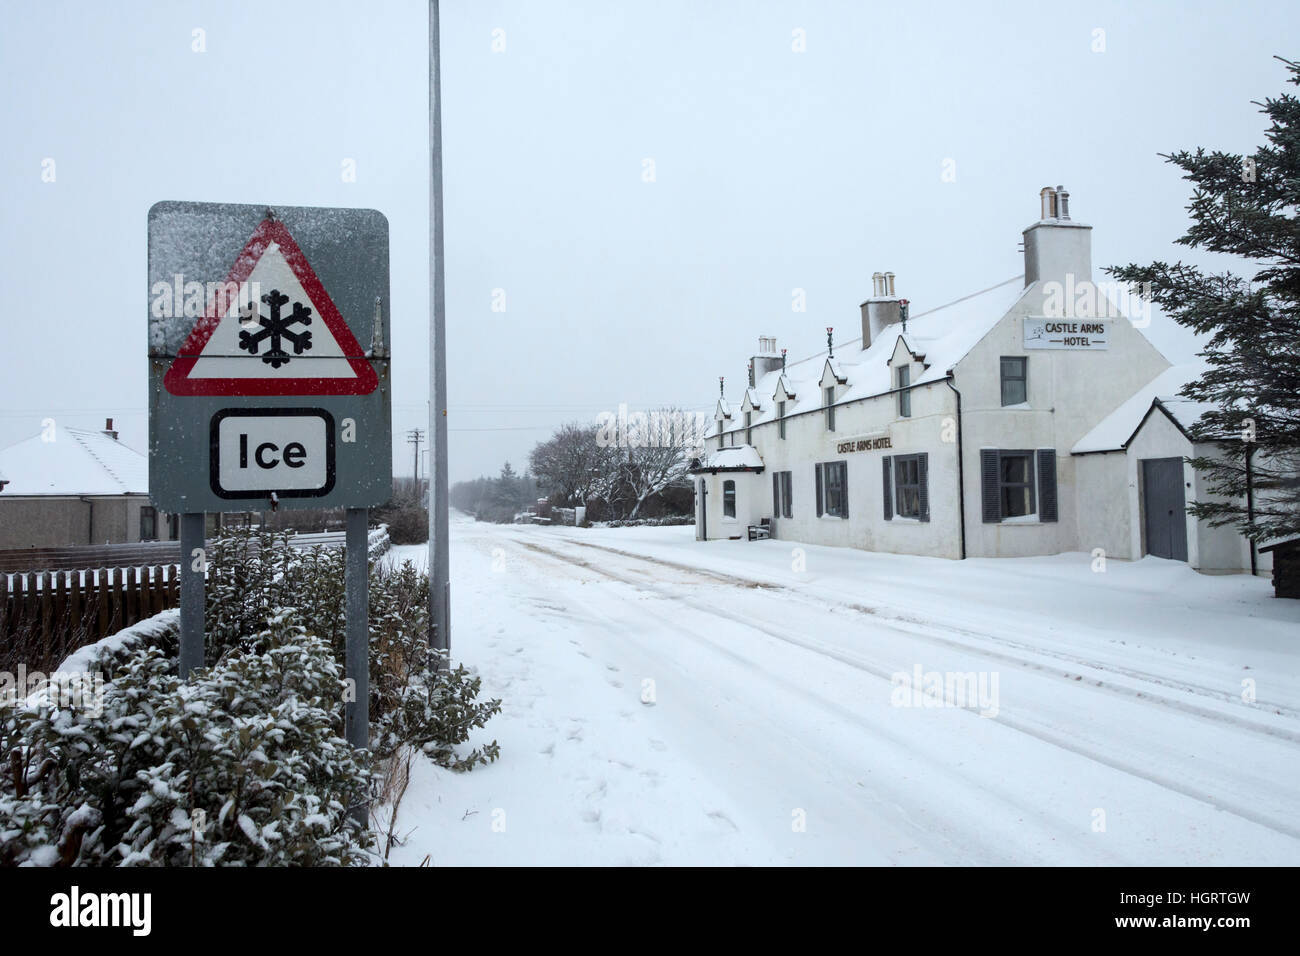 Mey, Caithness, Scotland, 12 Jan 2017. Heavy snow showers merged to give a covering of snow on the A836 road, the - Stock Image